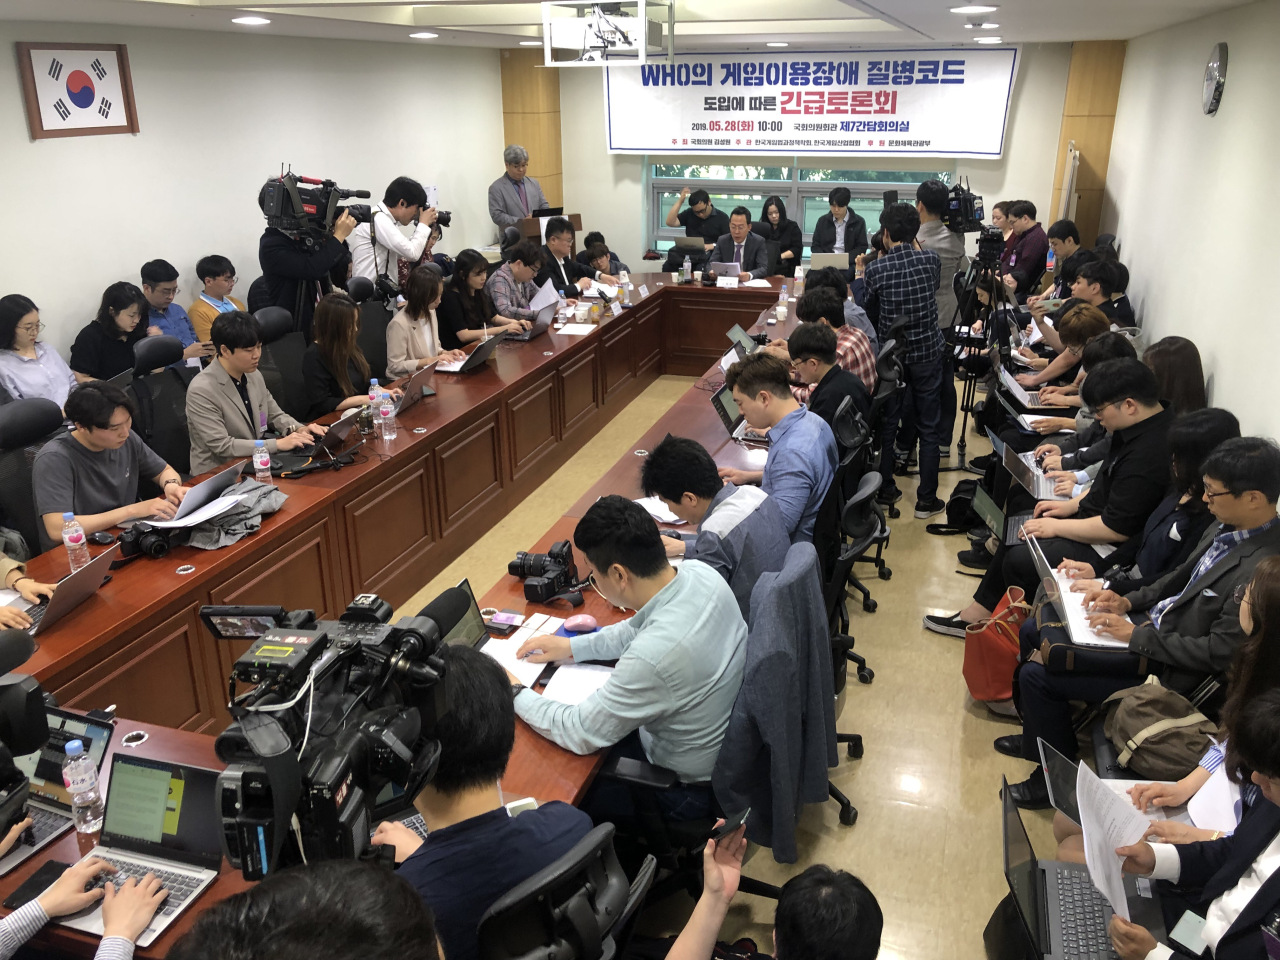 Participants attend an emergency panel discussion at National Assembly on Tuesday to oppose the World Health Organization's labeling of game addiction as a disorder. (Lim Jeong-yeo/The Korea Herald)